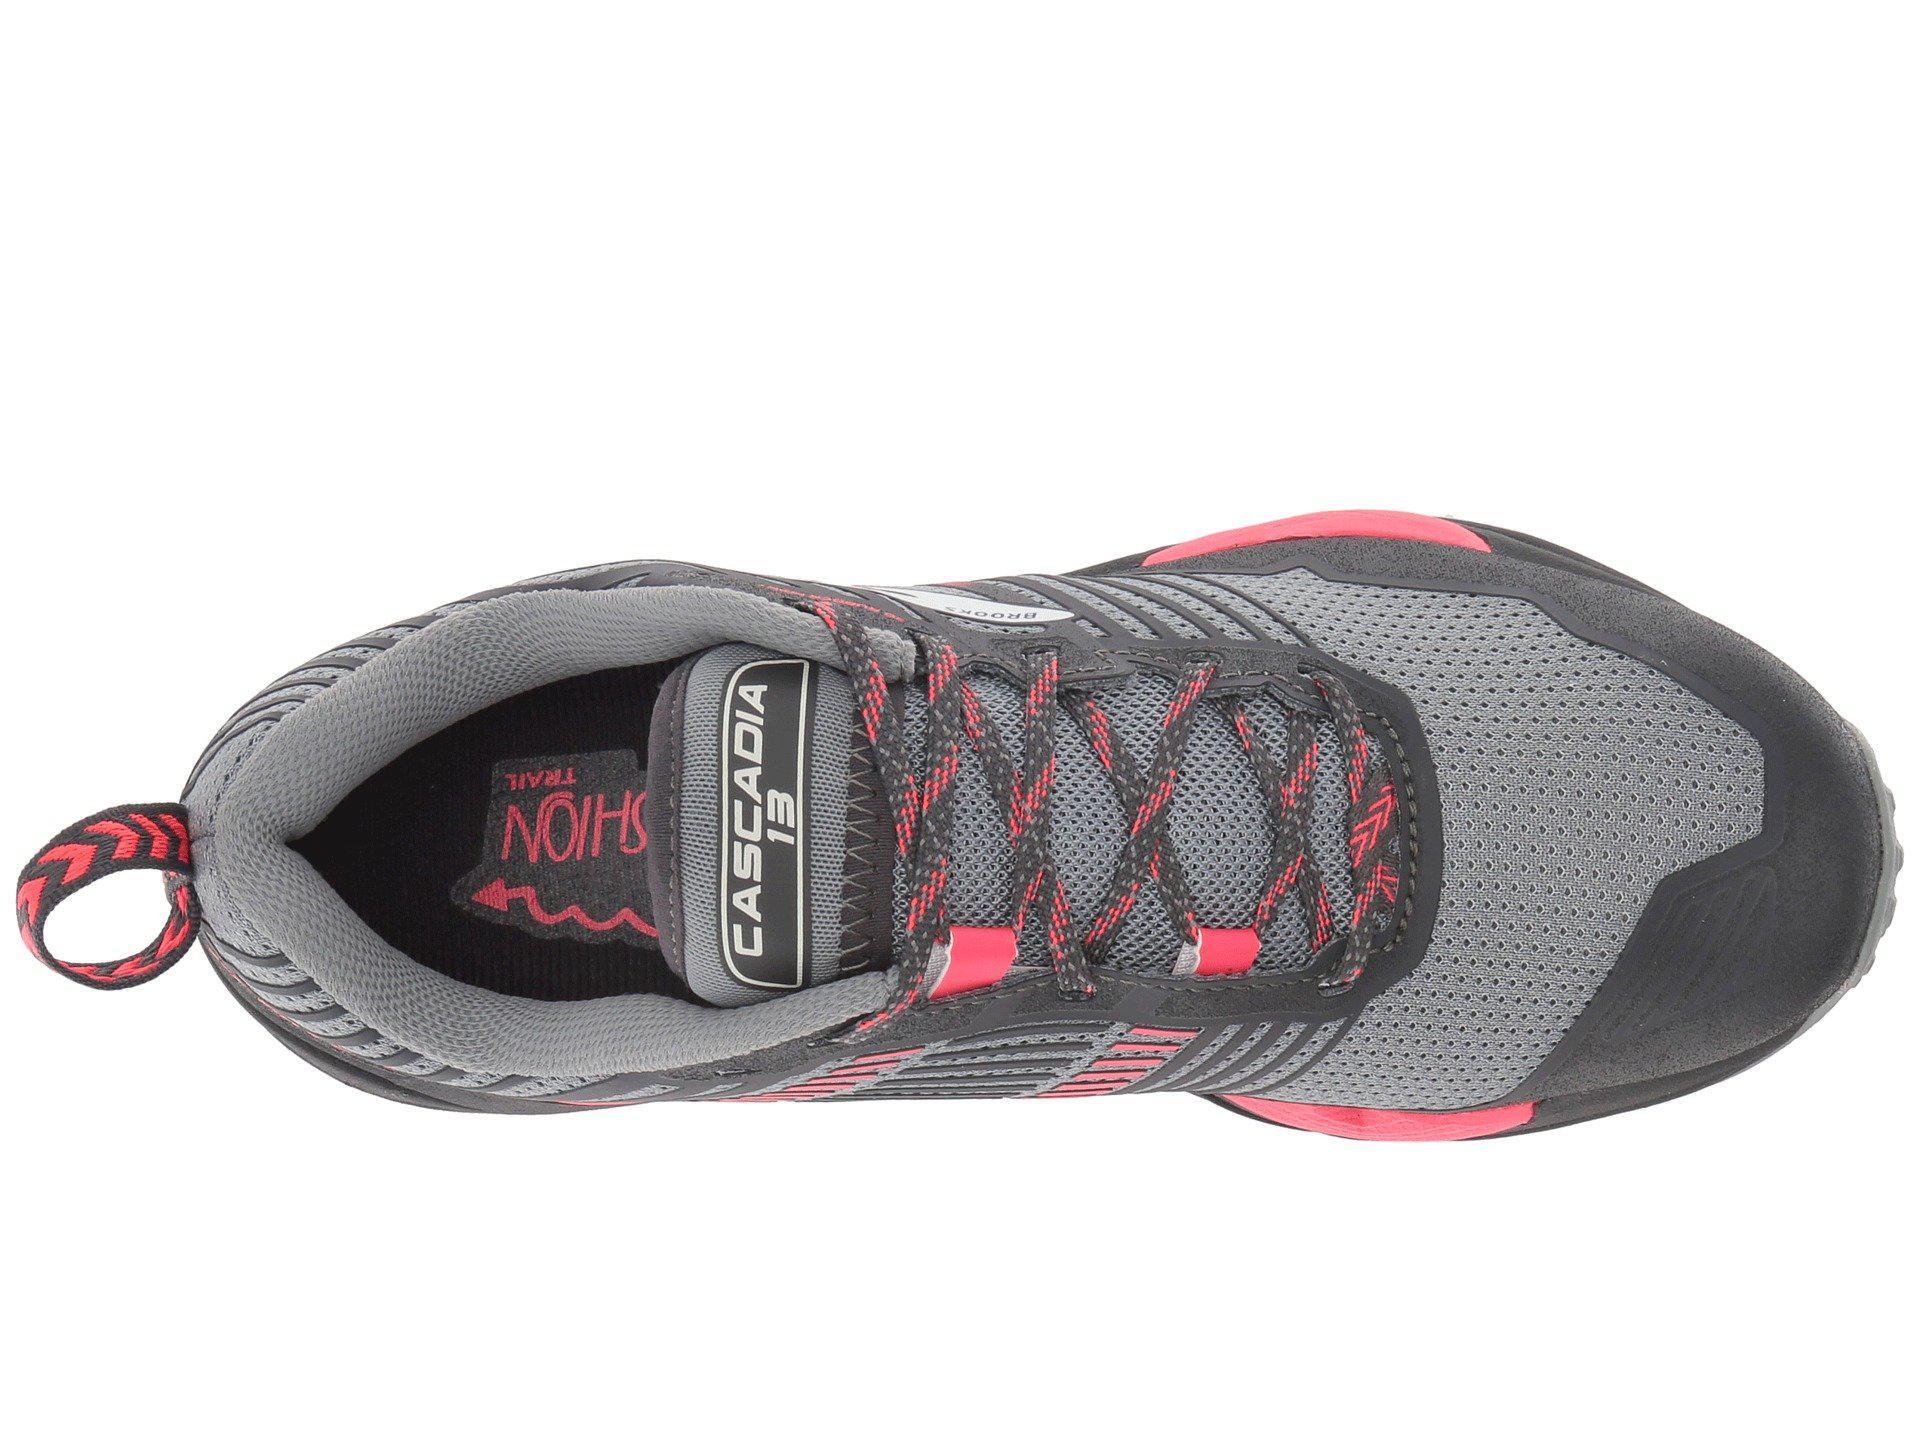 Lyst - Brooks Cascadia 13 (ink navy pink) Women s Running Shoes in Gray bfc0009b4ab